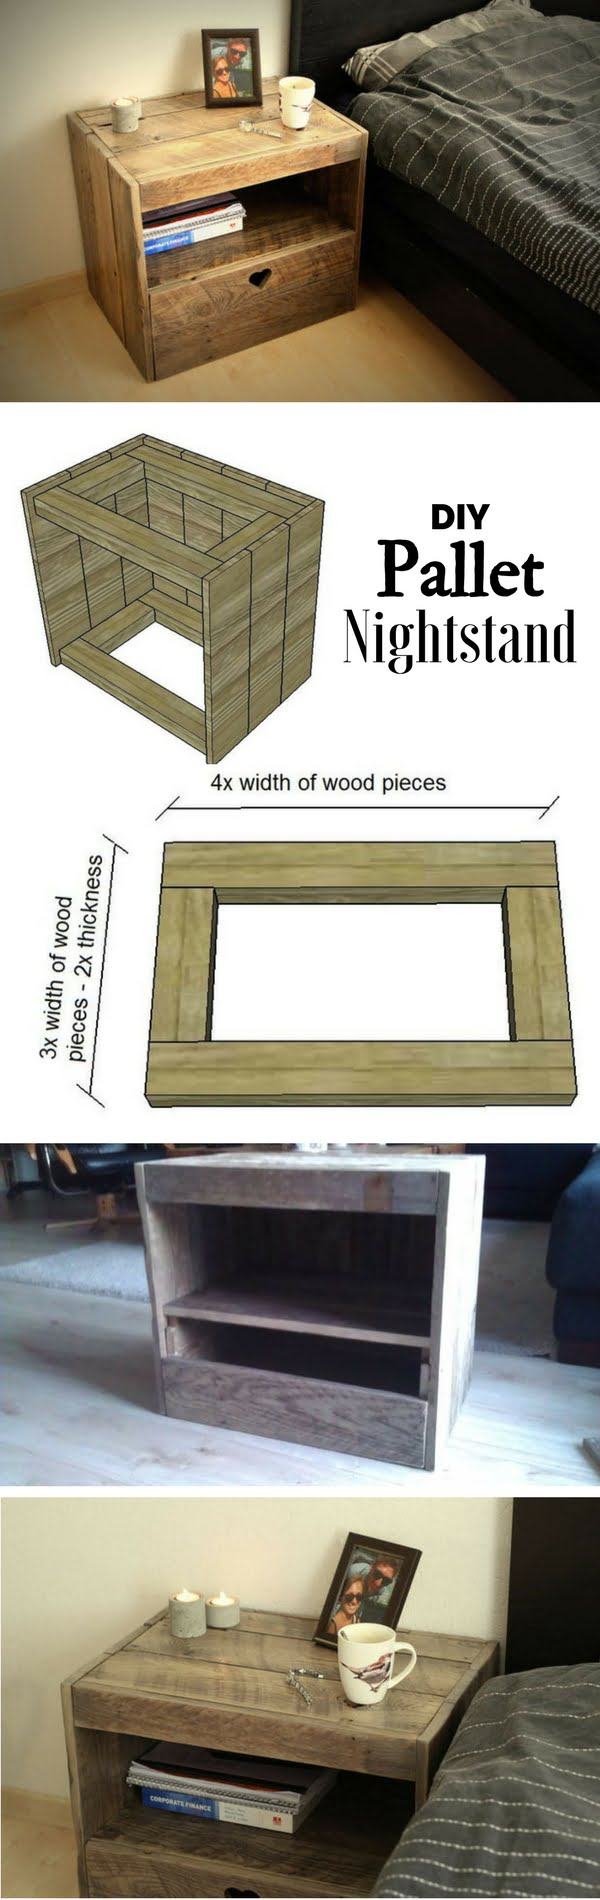 12 Easy DIY Nightstands That You Can Build on a Budget - Check out how to build an easy DIY pallet nightstand